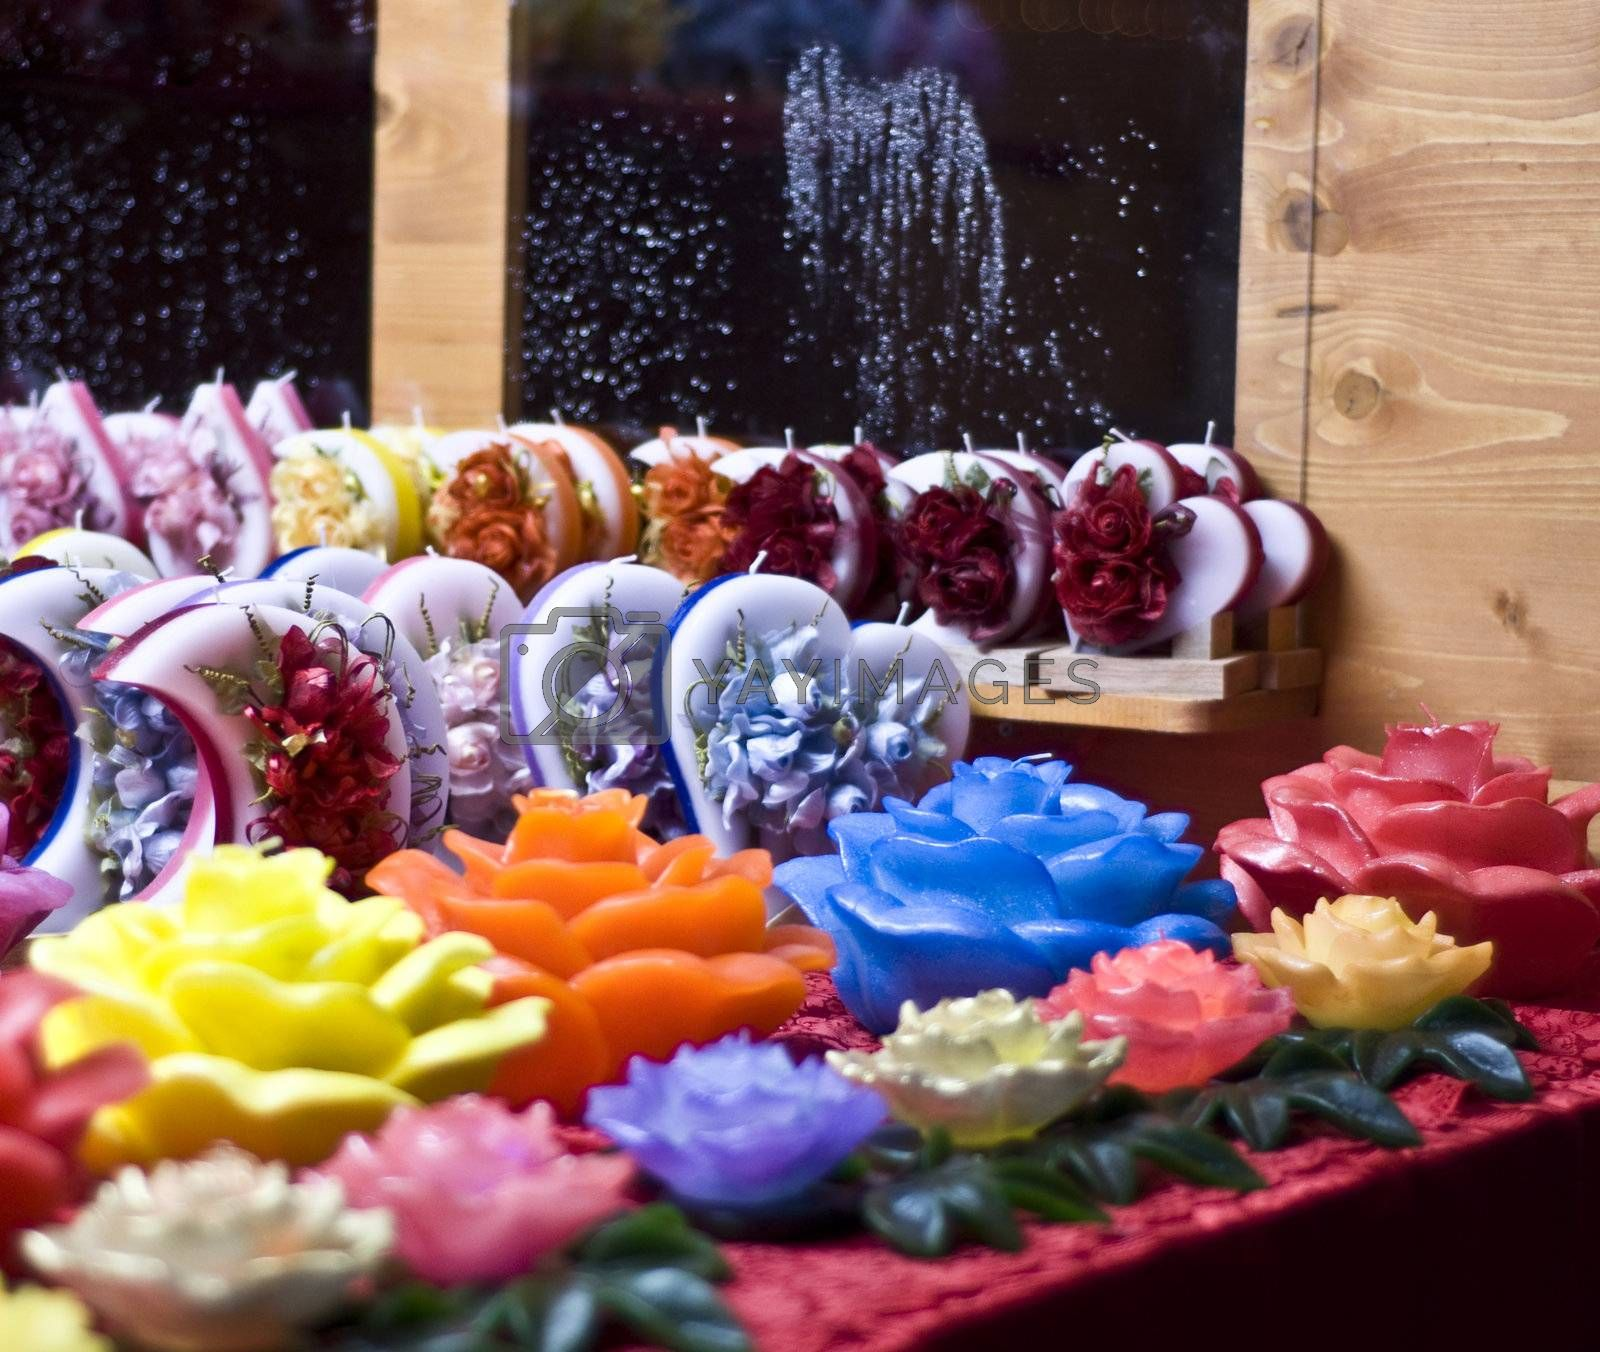 decorative candles in the shape of multicolored roses and heart